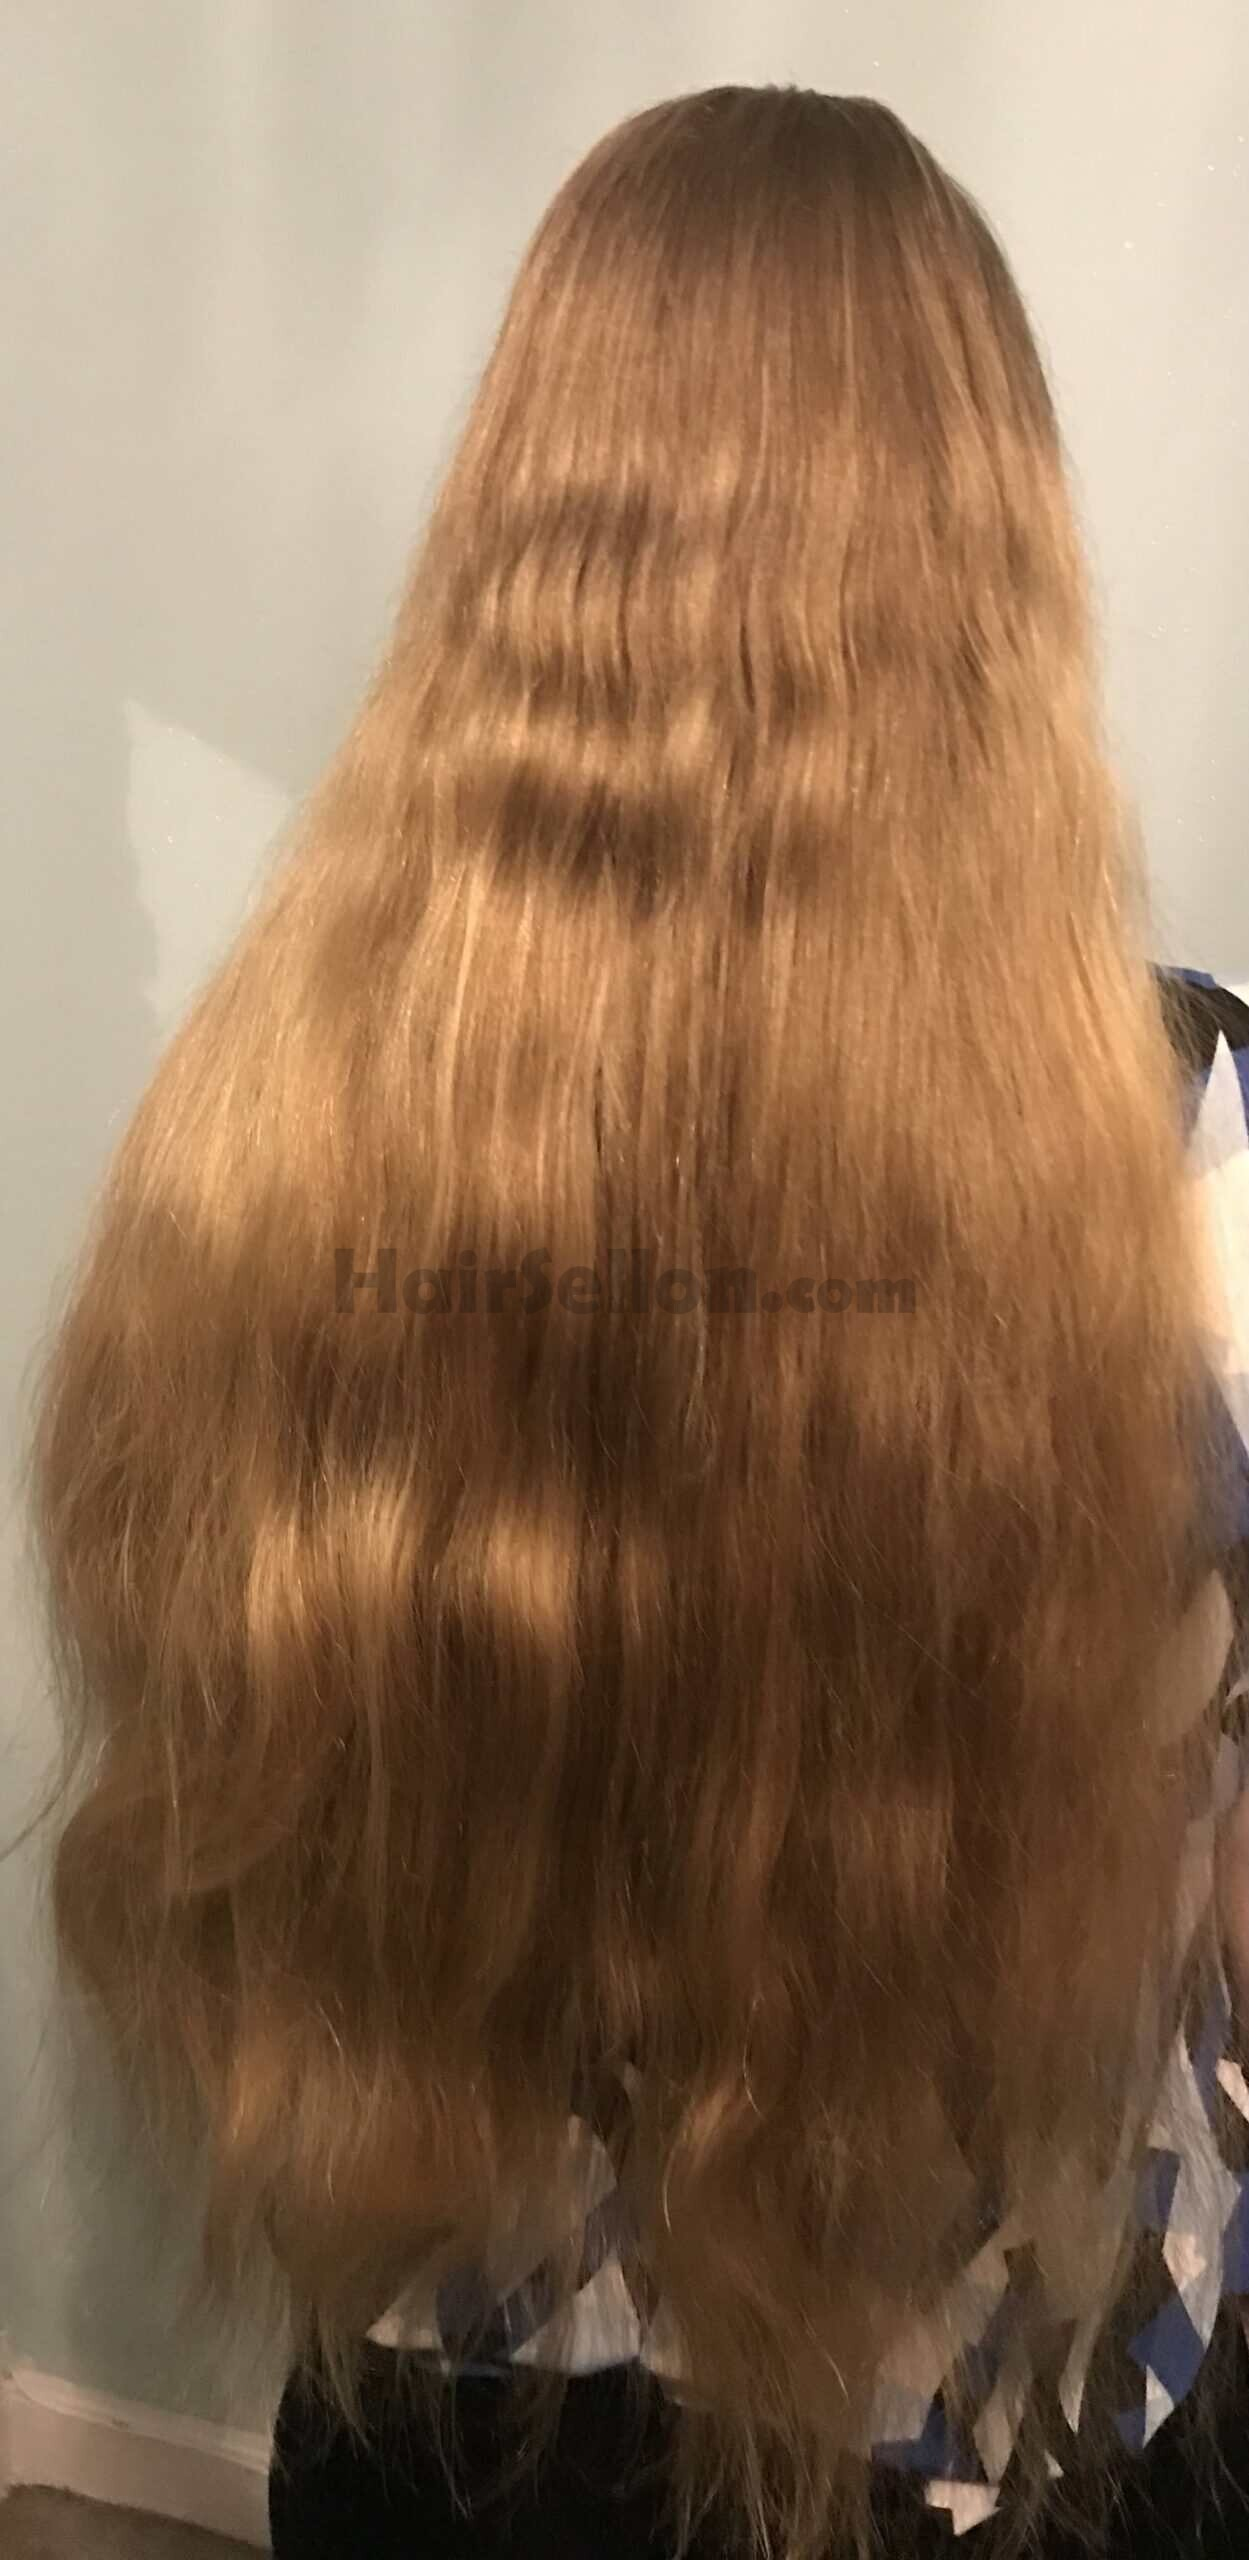 back view, texture and highlights